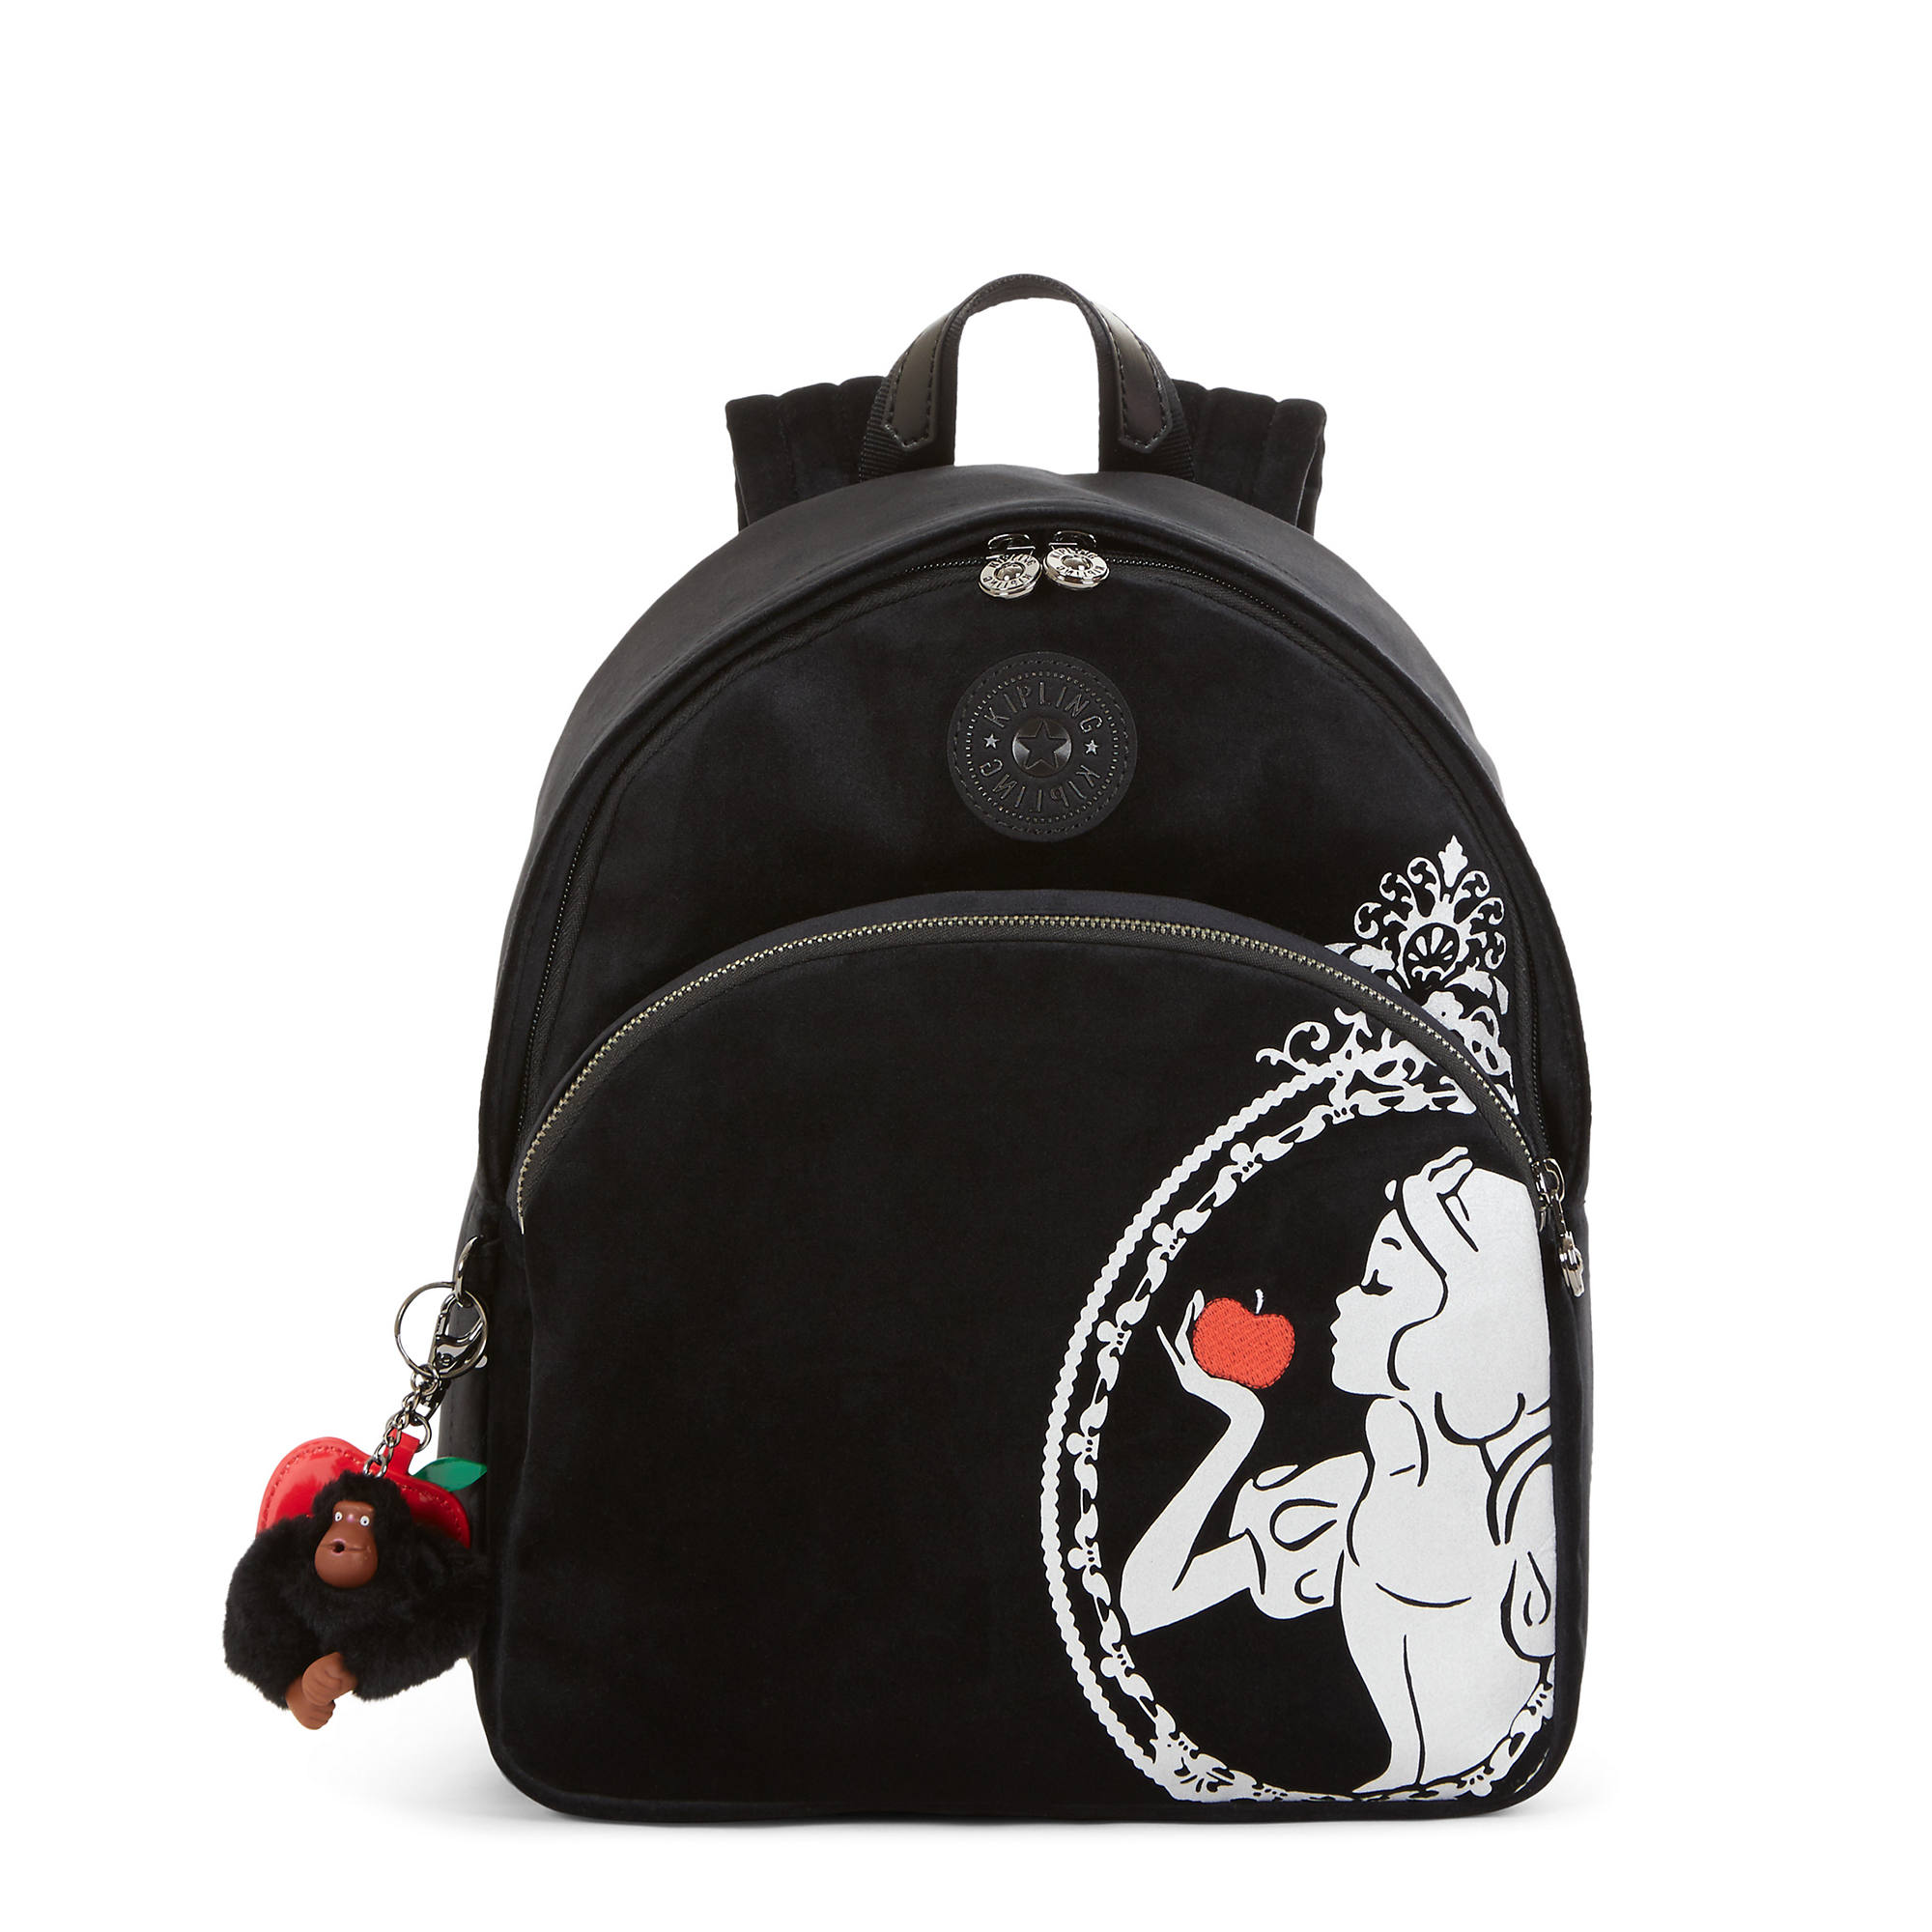 Backpack Or Purse For Disney- Fenix Toulouse Handball 991b91161968c